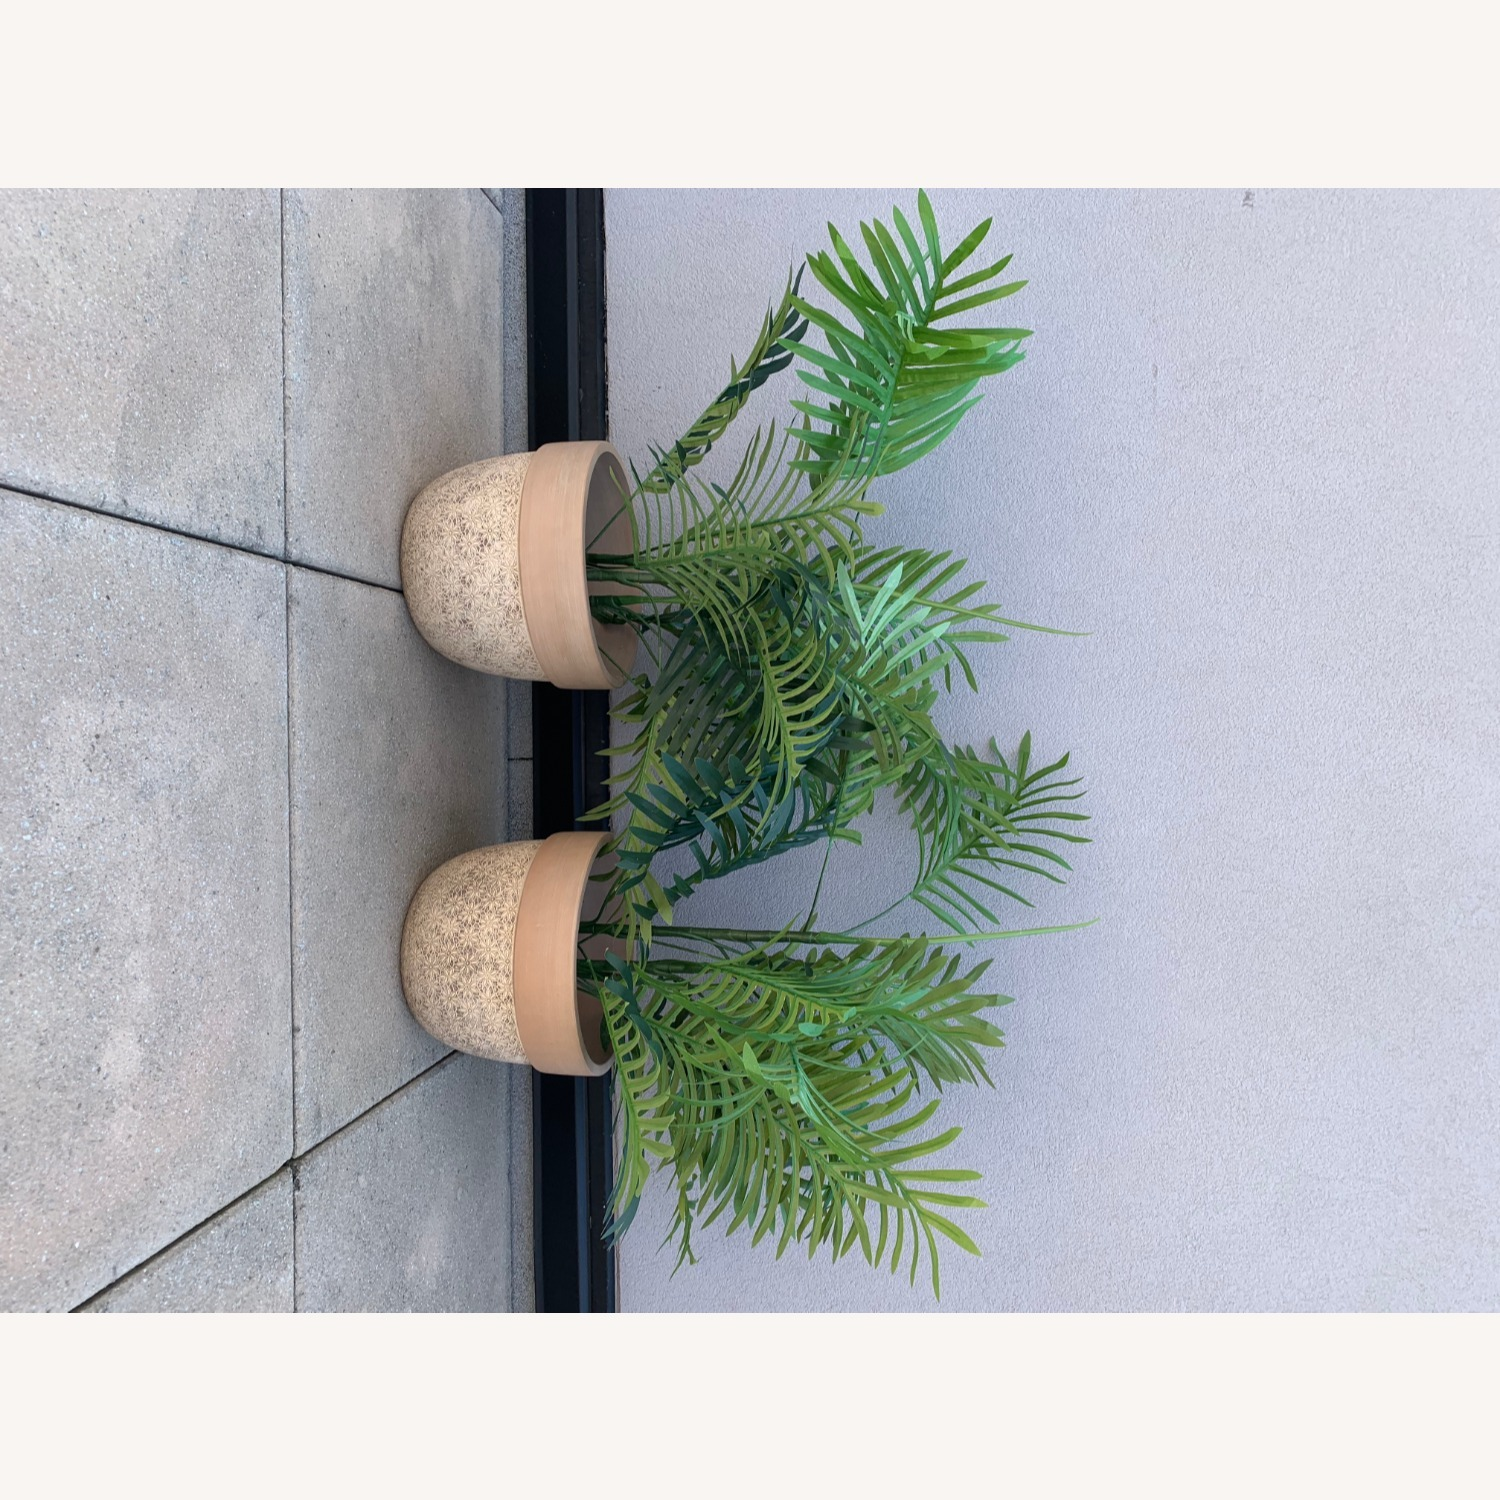 Ceramic Planters With Etched Flowers + Faux Palms - image-7